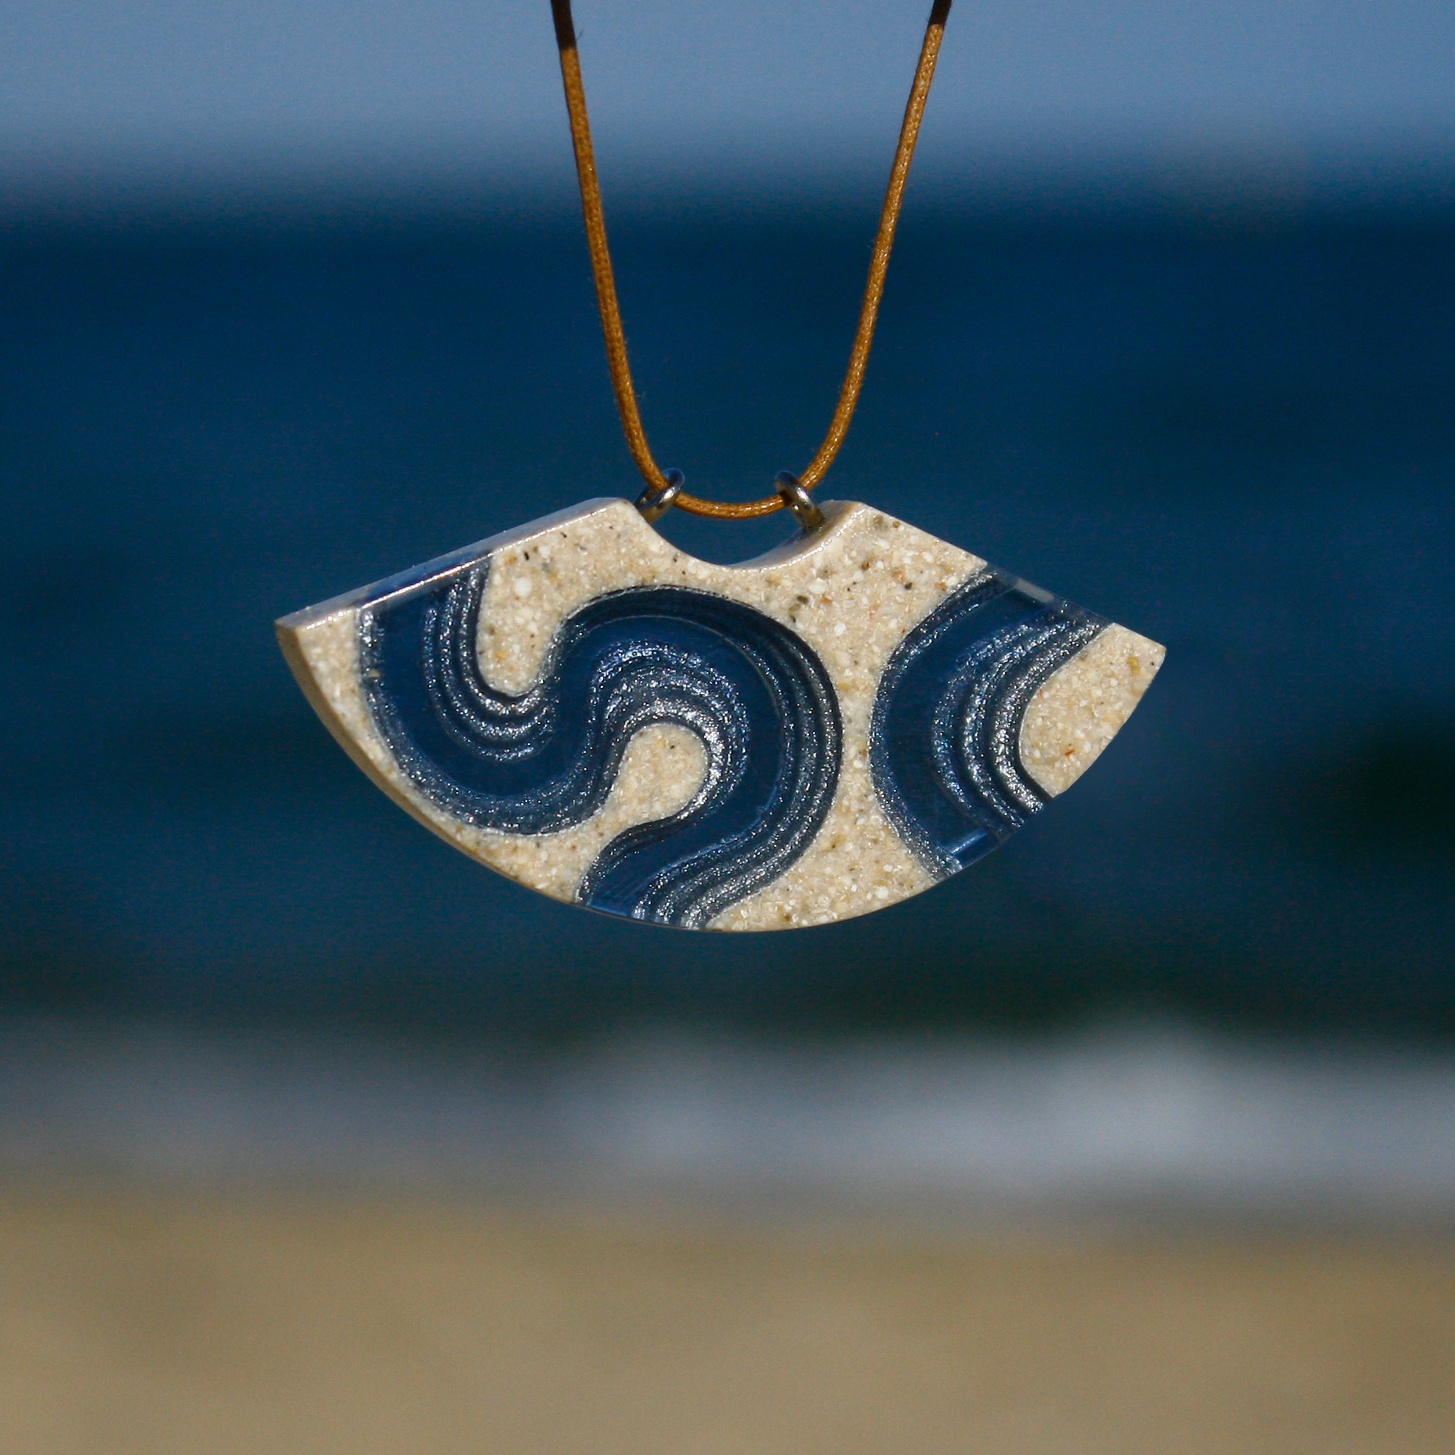 Waterway beach necklace with blue background